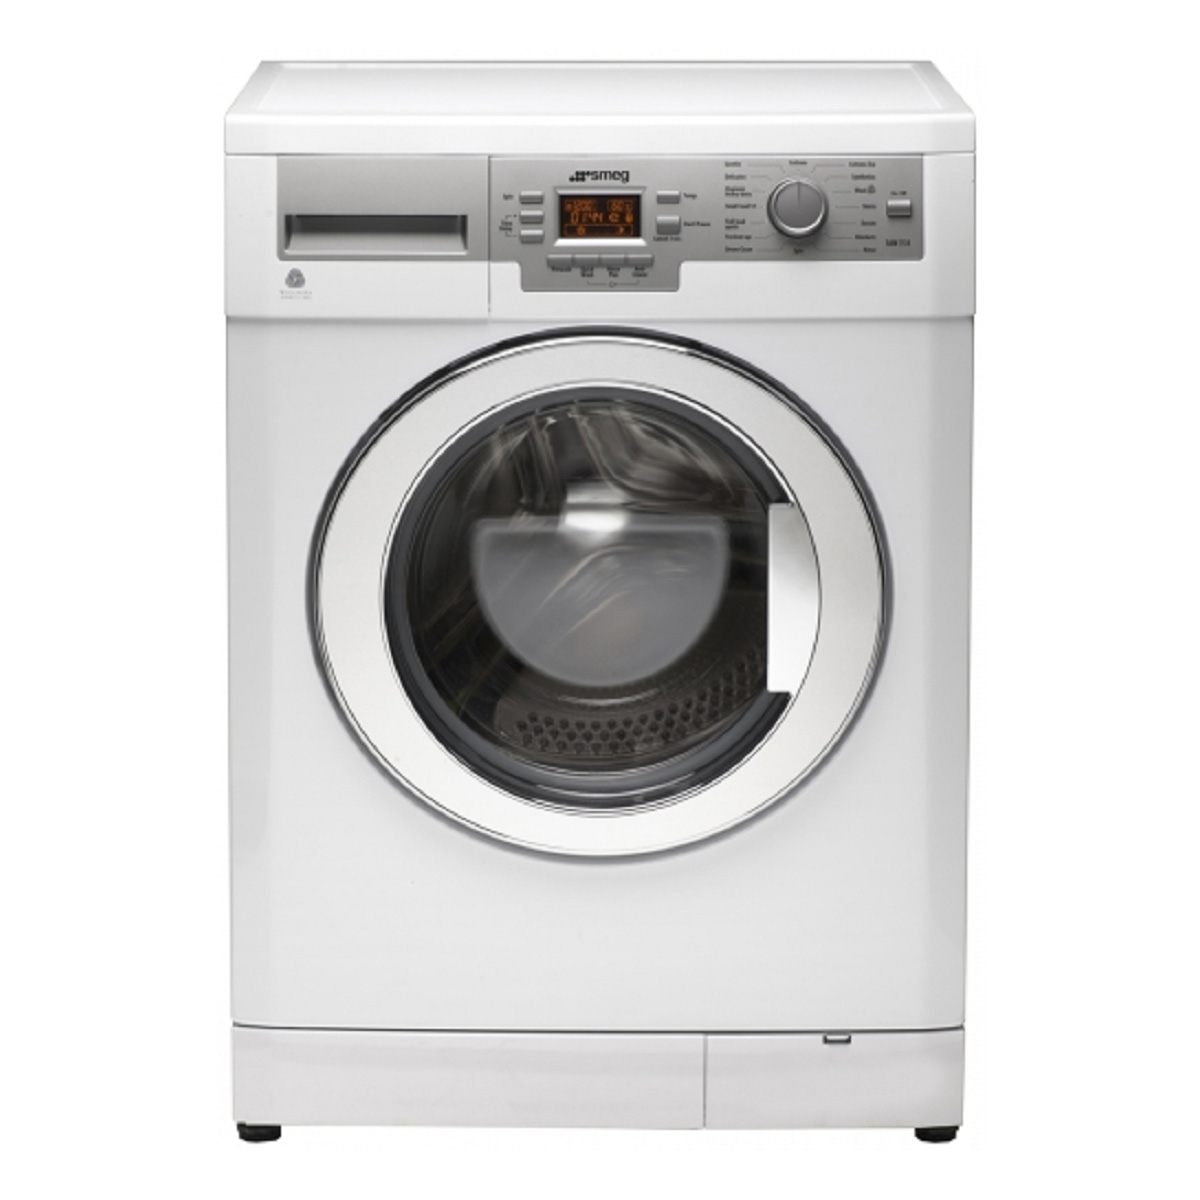 Smeg Washer Dryer Combo SAWD612